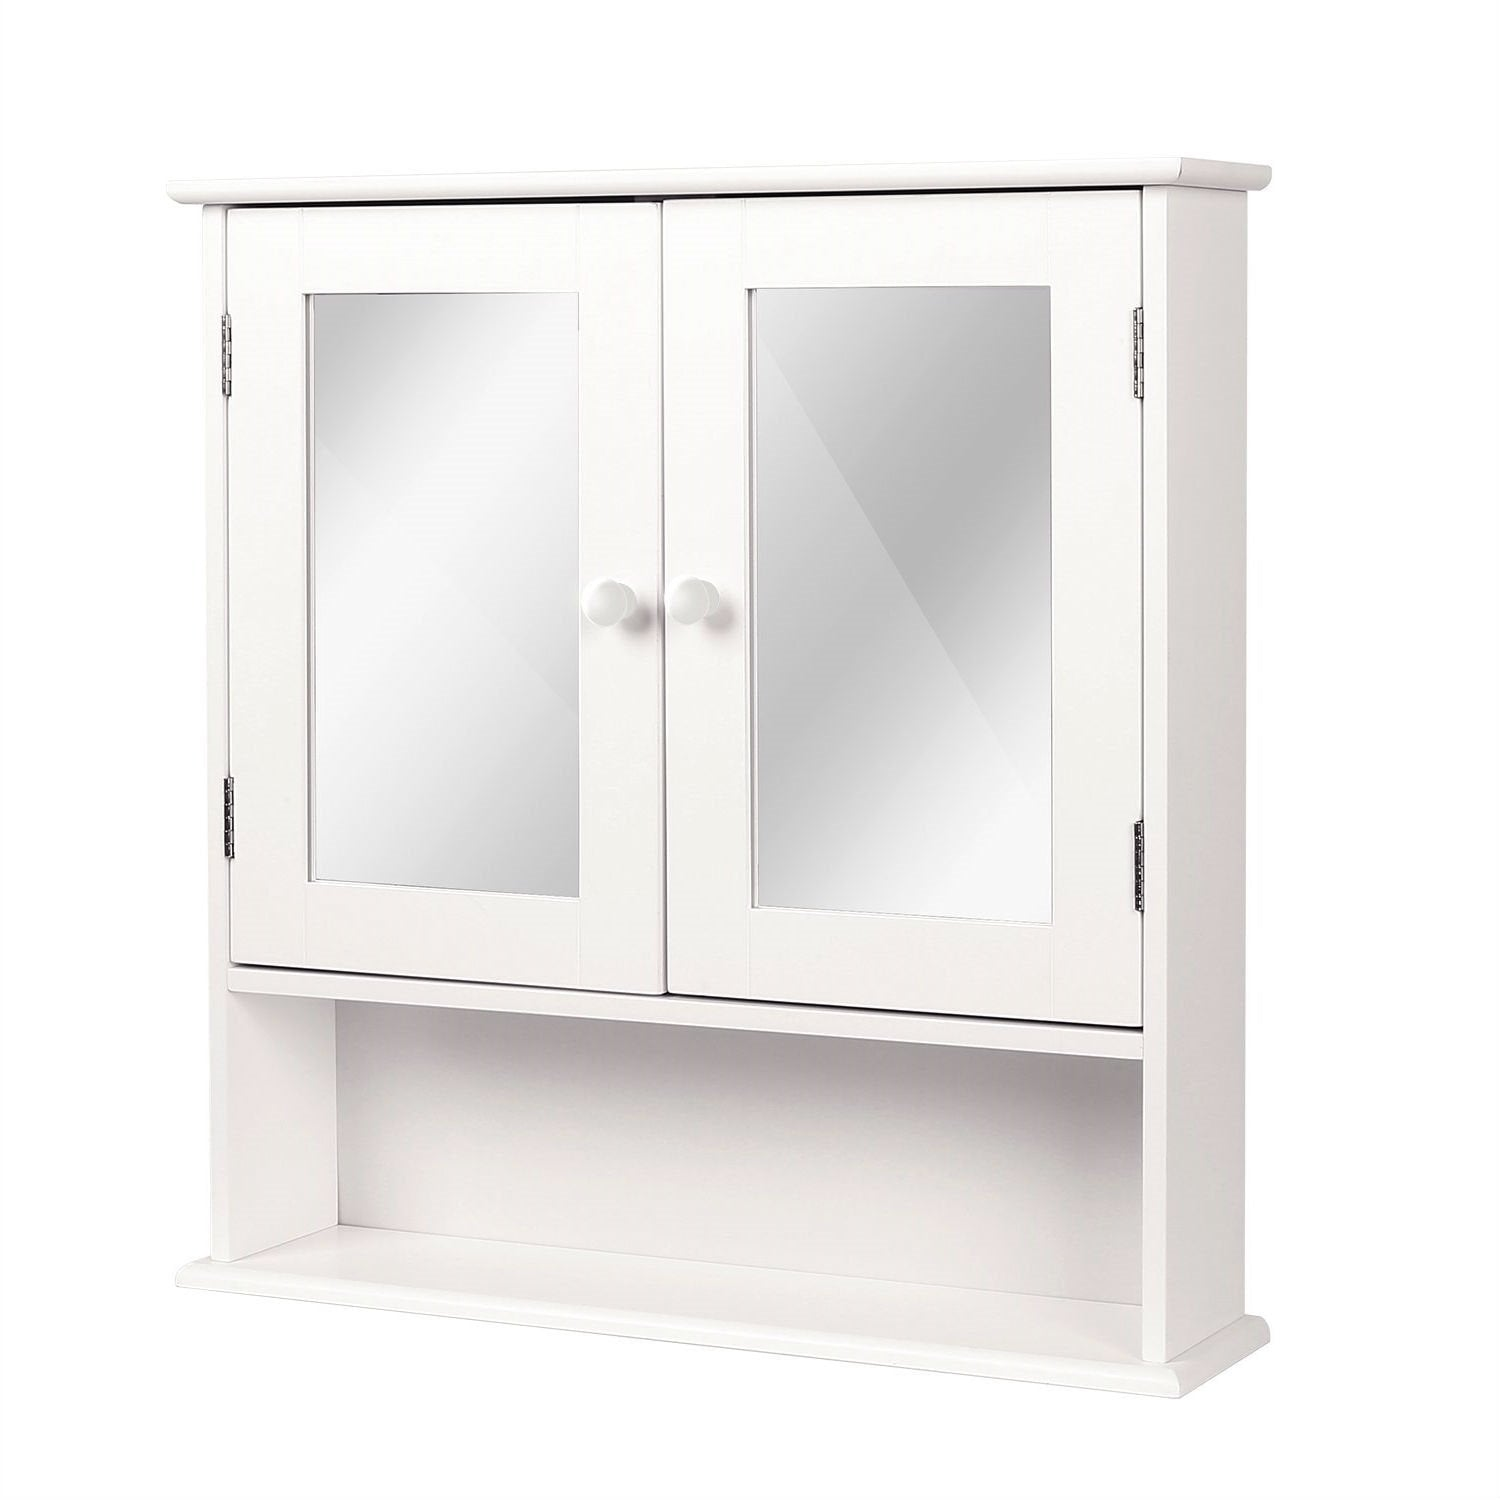 White 2-Door Mirrored Medicine Cabinet with Open Shelf